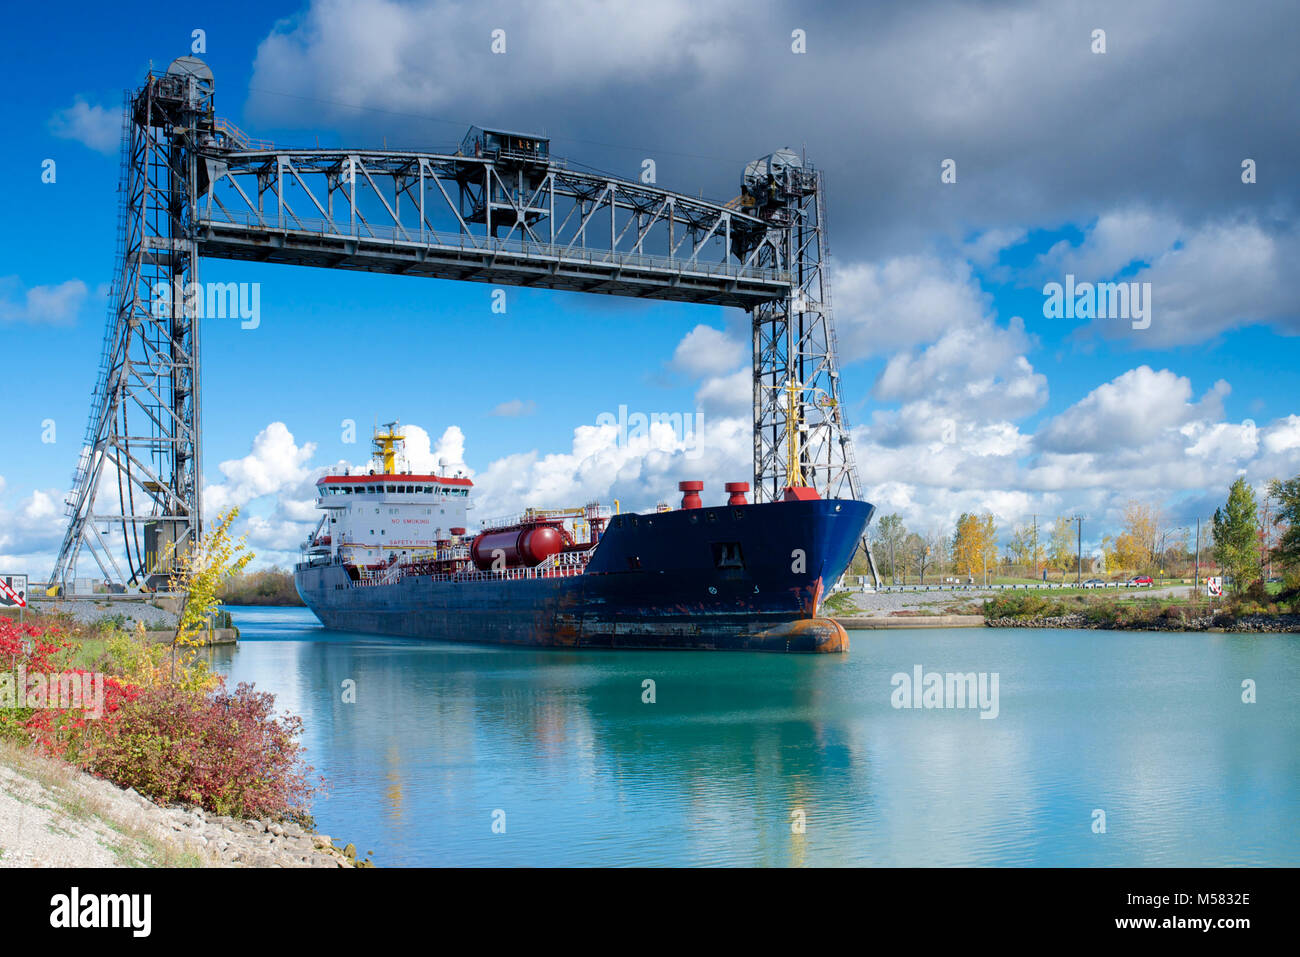 A chemical tanker passing through the Welland Canal, Ontario, Canada - Stock Image